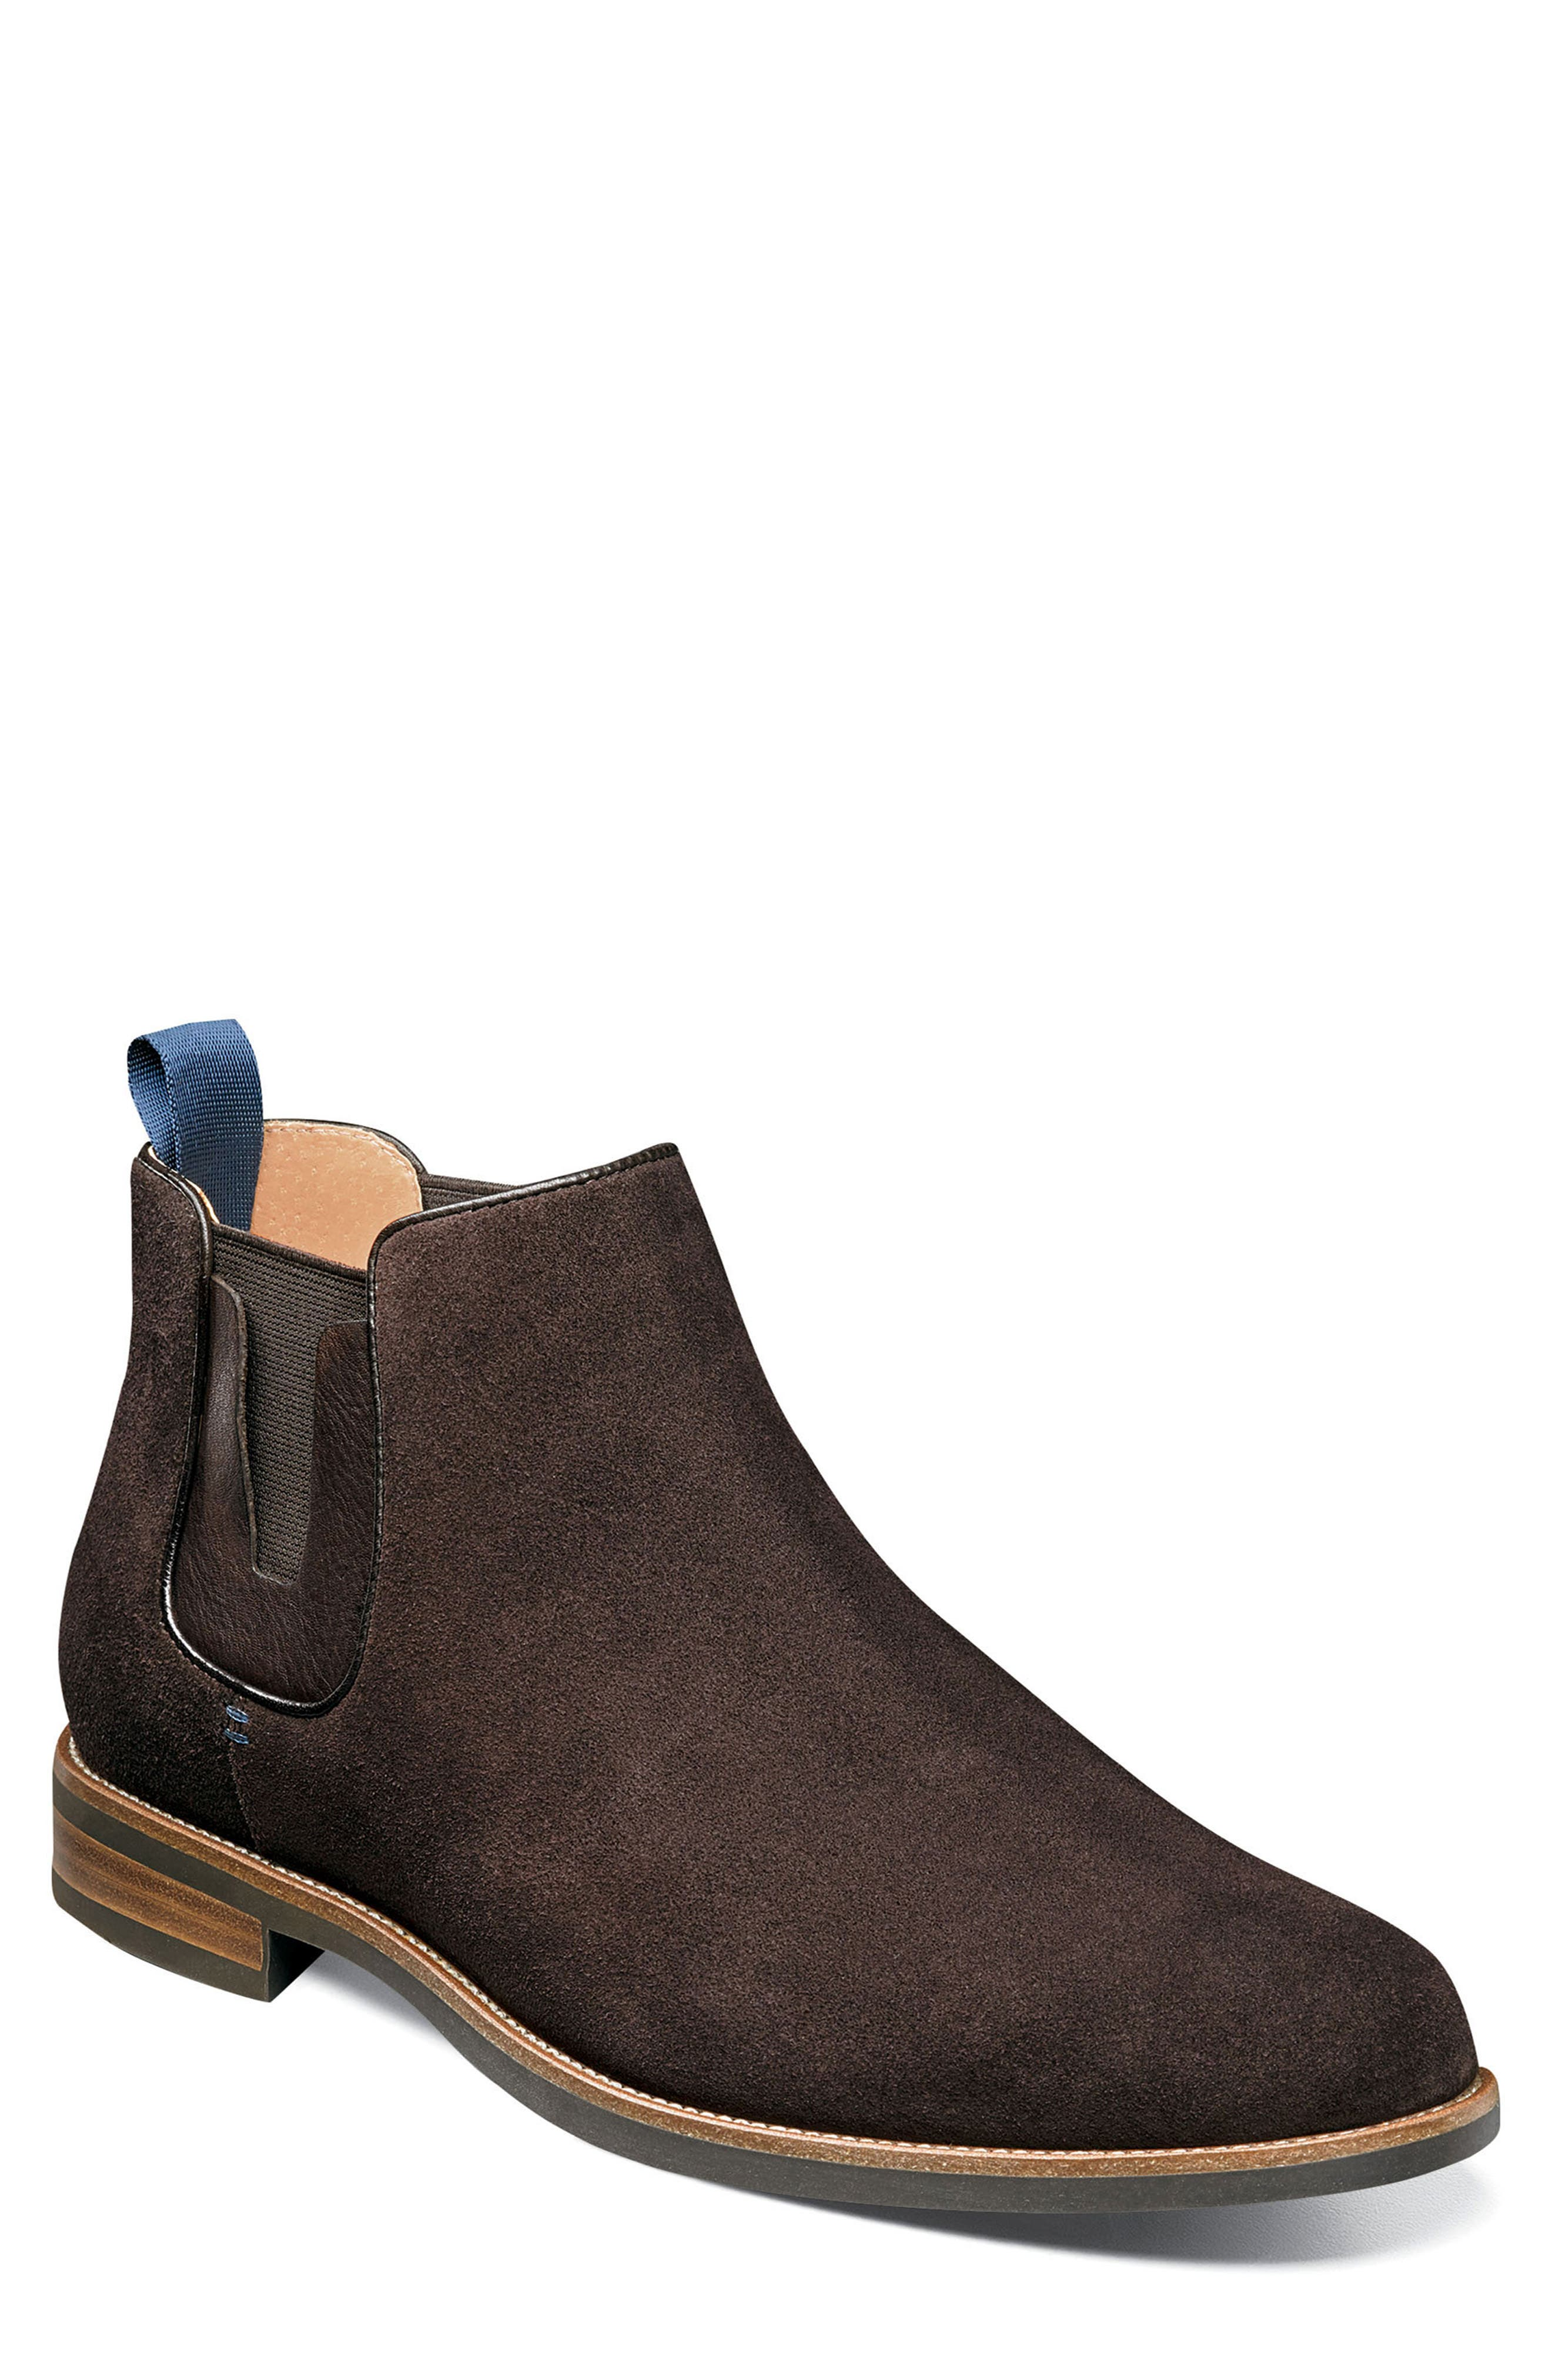 FLORSHEIM Uptown Plain Toe Mid Chelsea Boot in Brown Suede